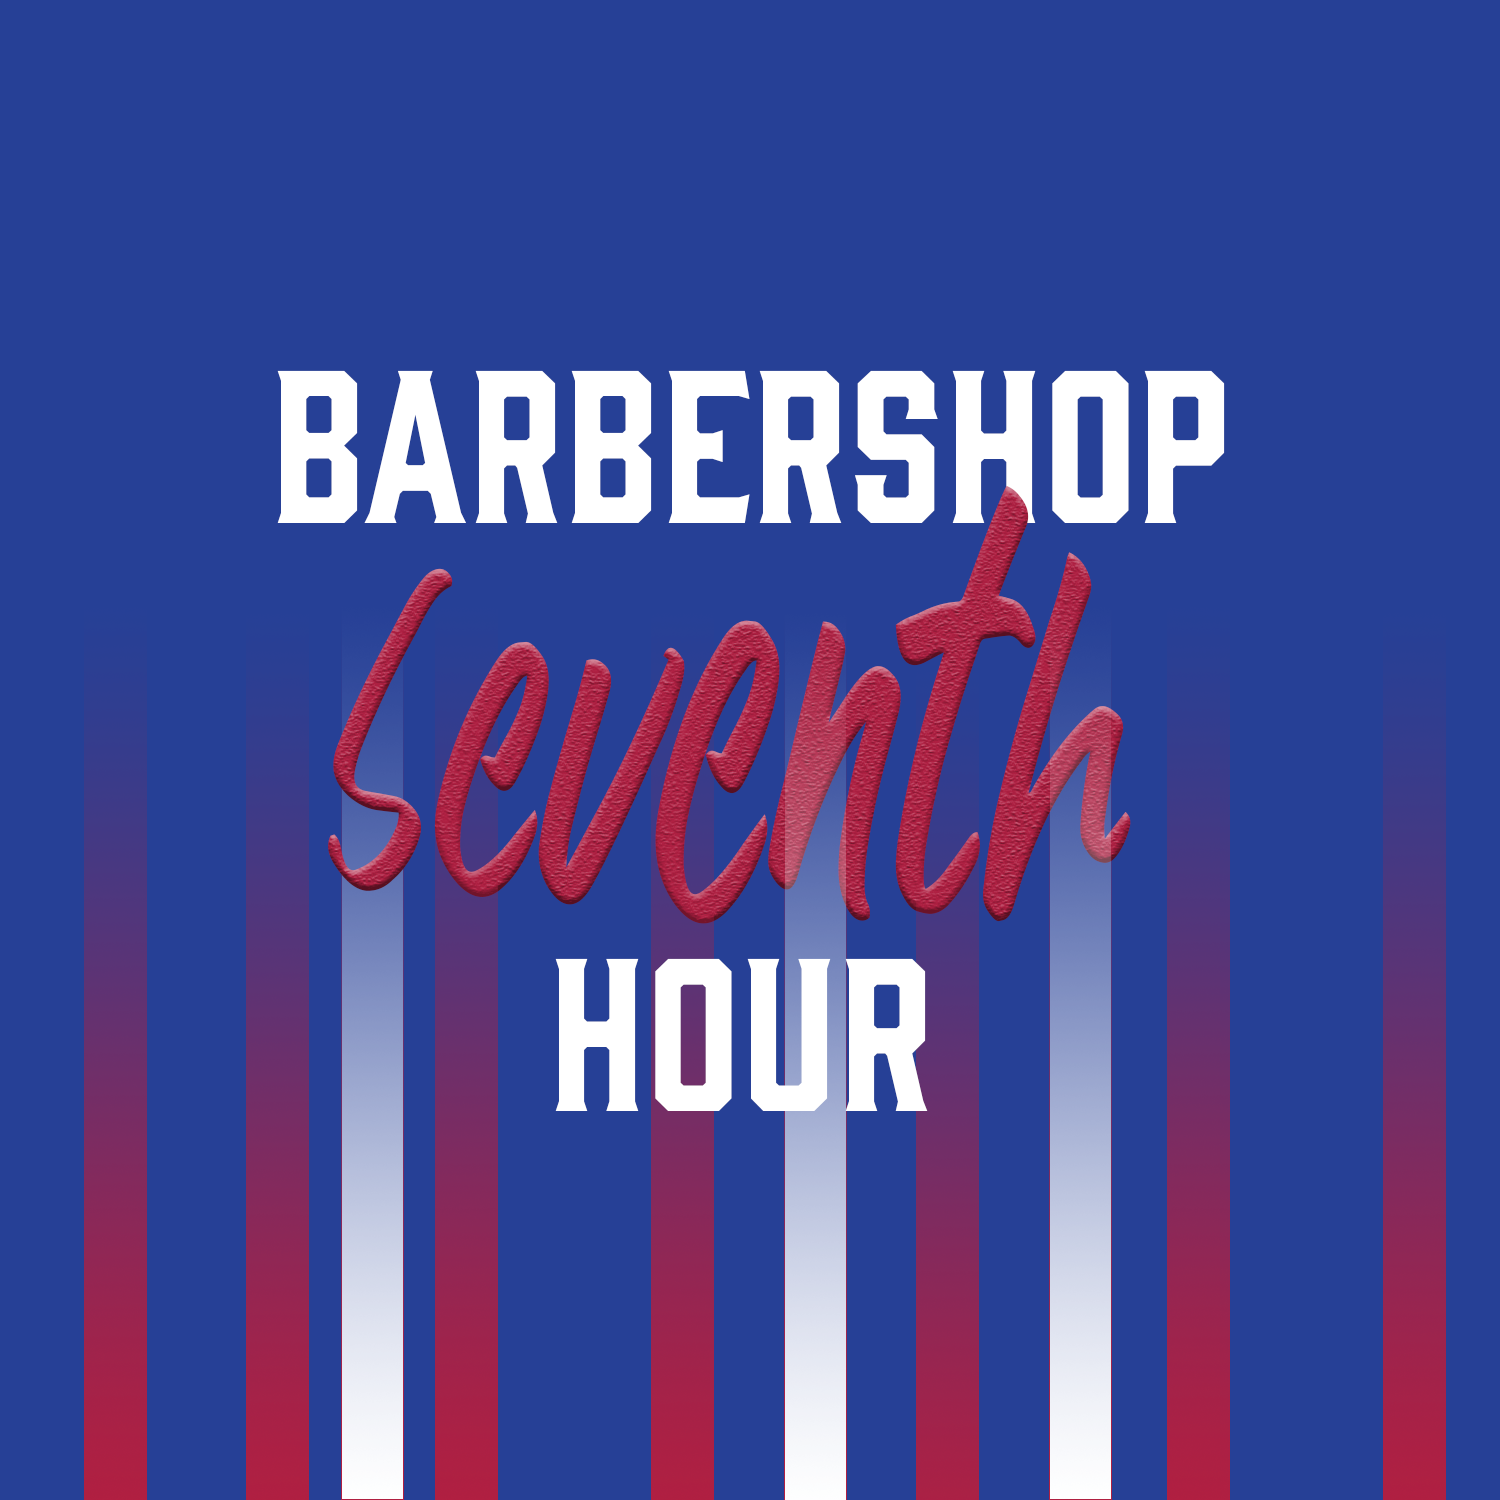 Barbershop 7th Hour